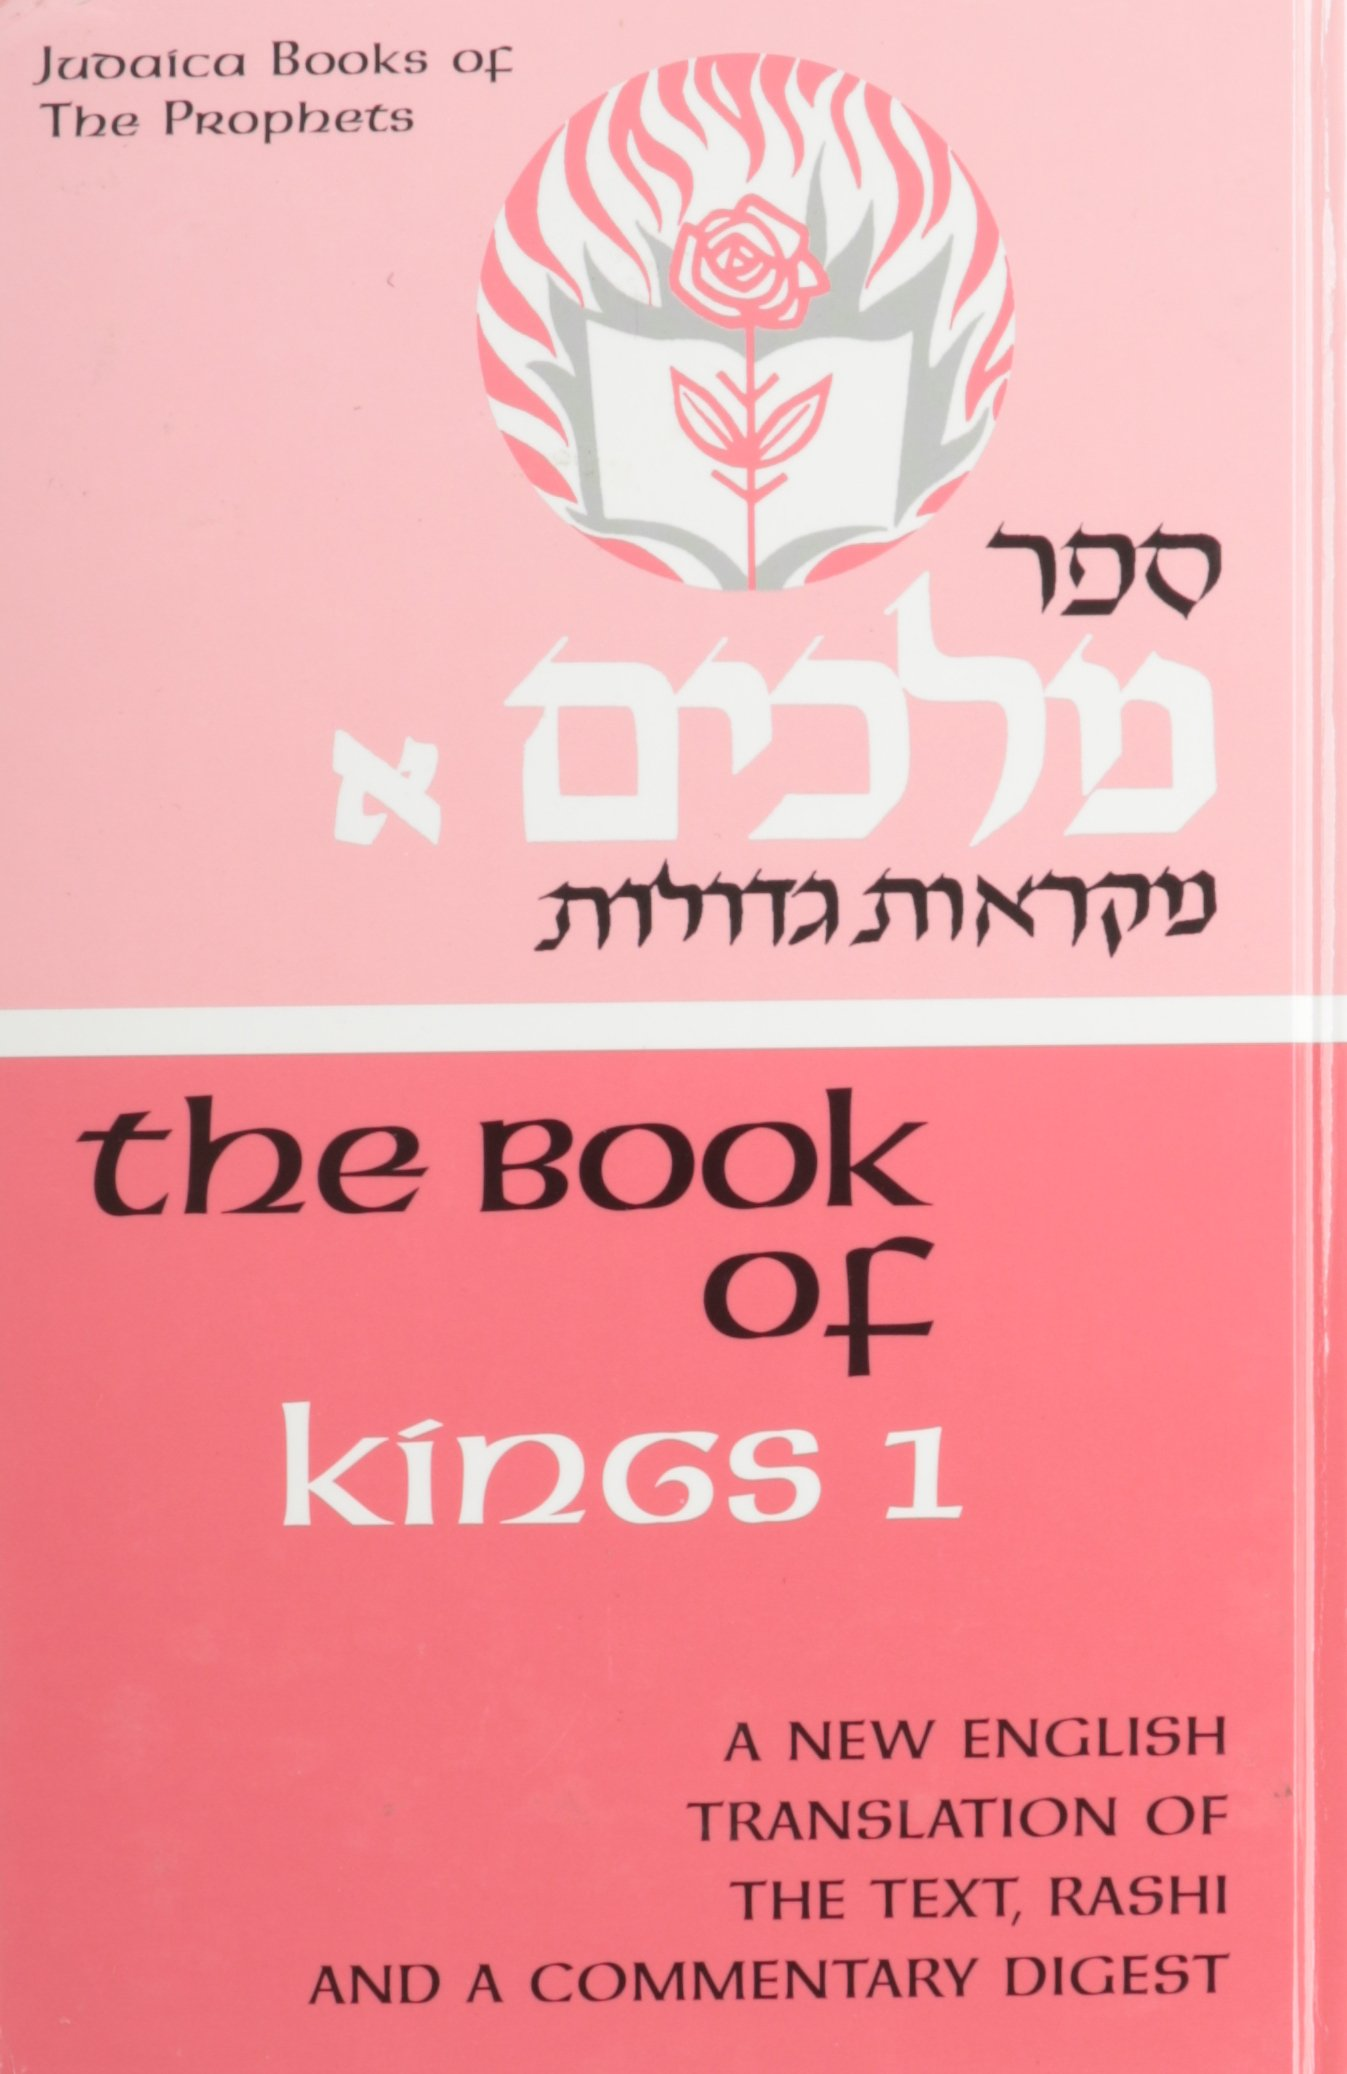 The Book Of Kings I (judaica Books Of The Prophets): A J Rosenberg,  Reuven Hochberg: 9780910818308: Amazon: Books